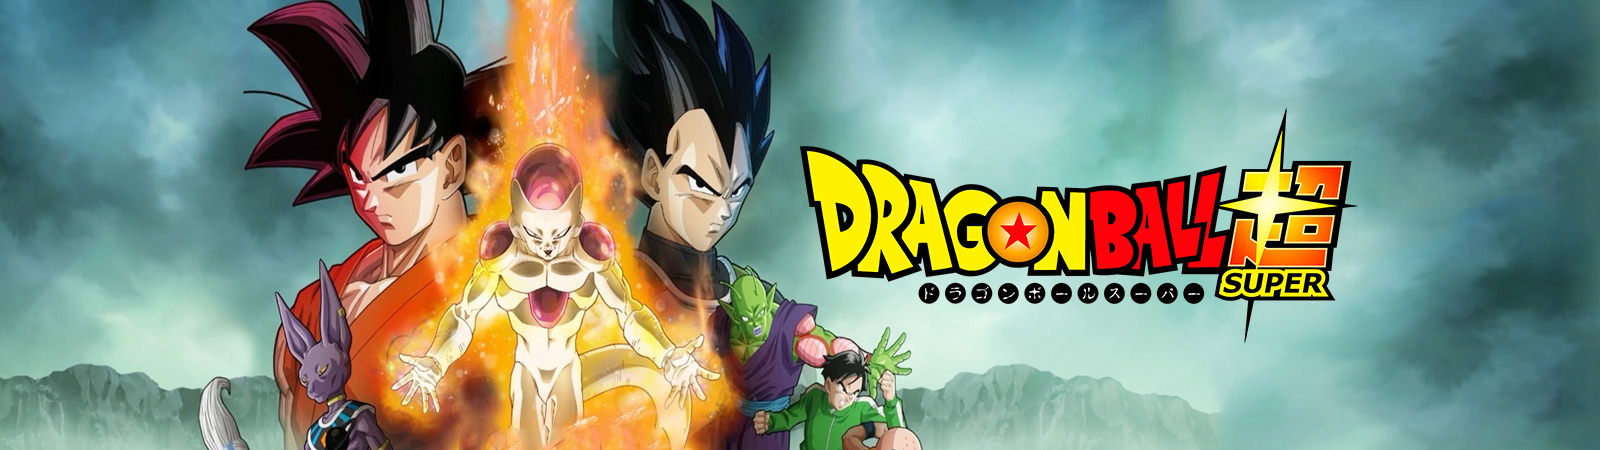 Tập 80 - Dragon Ball Super